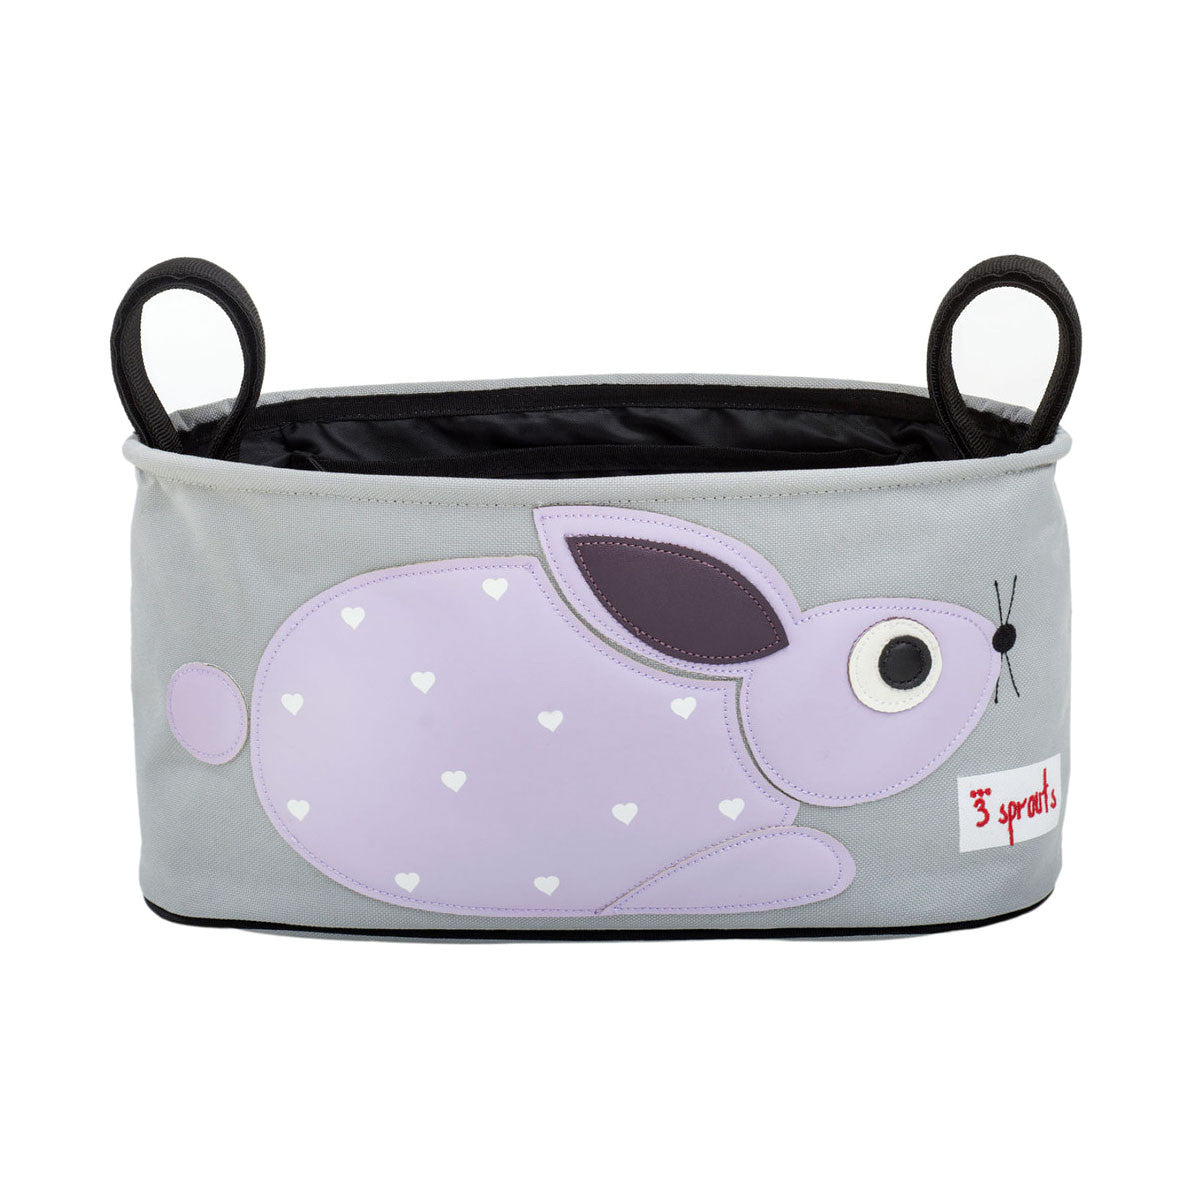 3 Sprouts Stroller Organiser Purple Rabbit - DarlingBaby